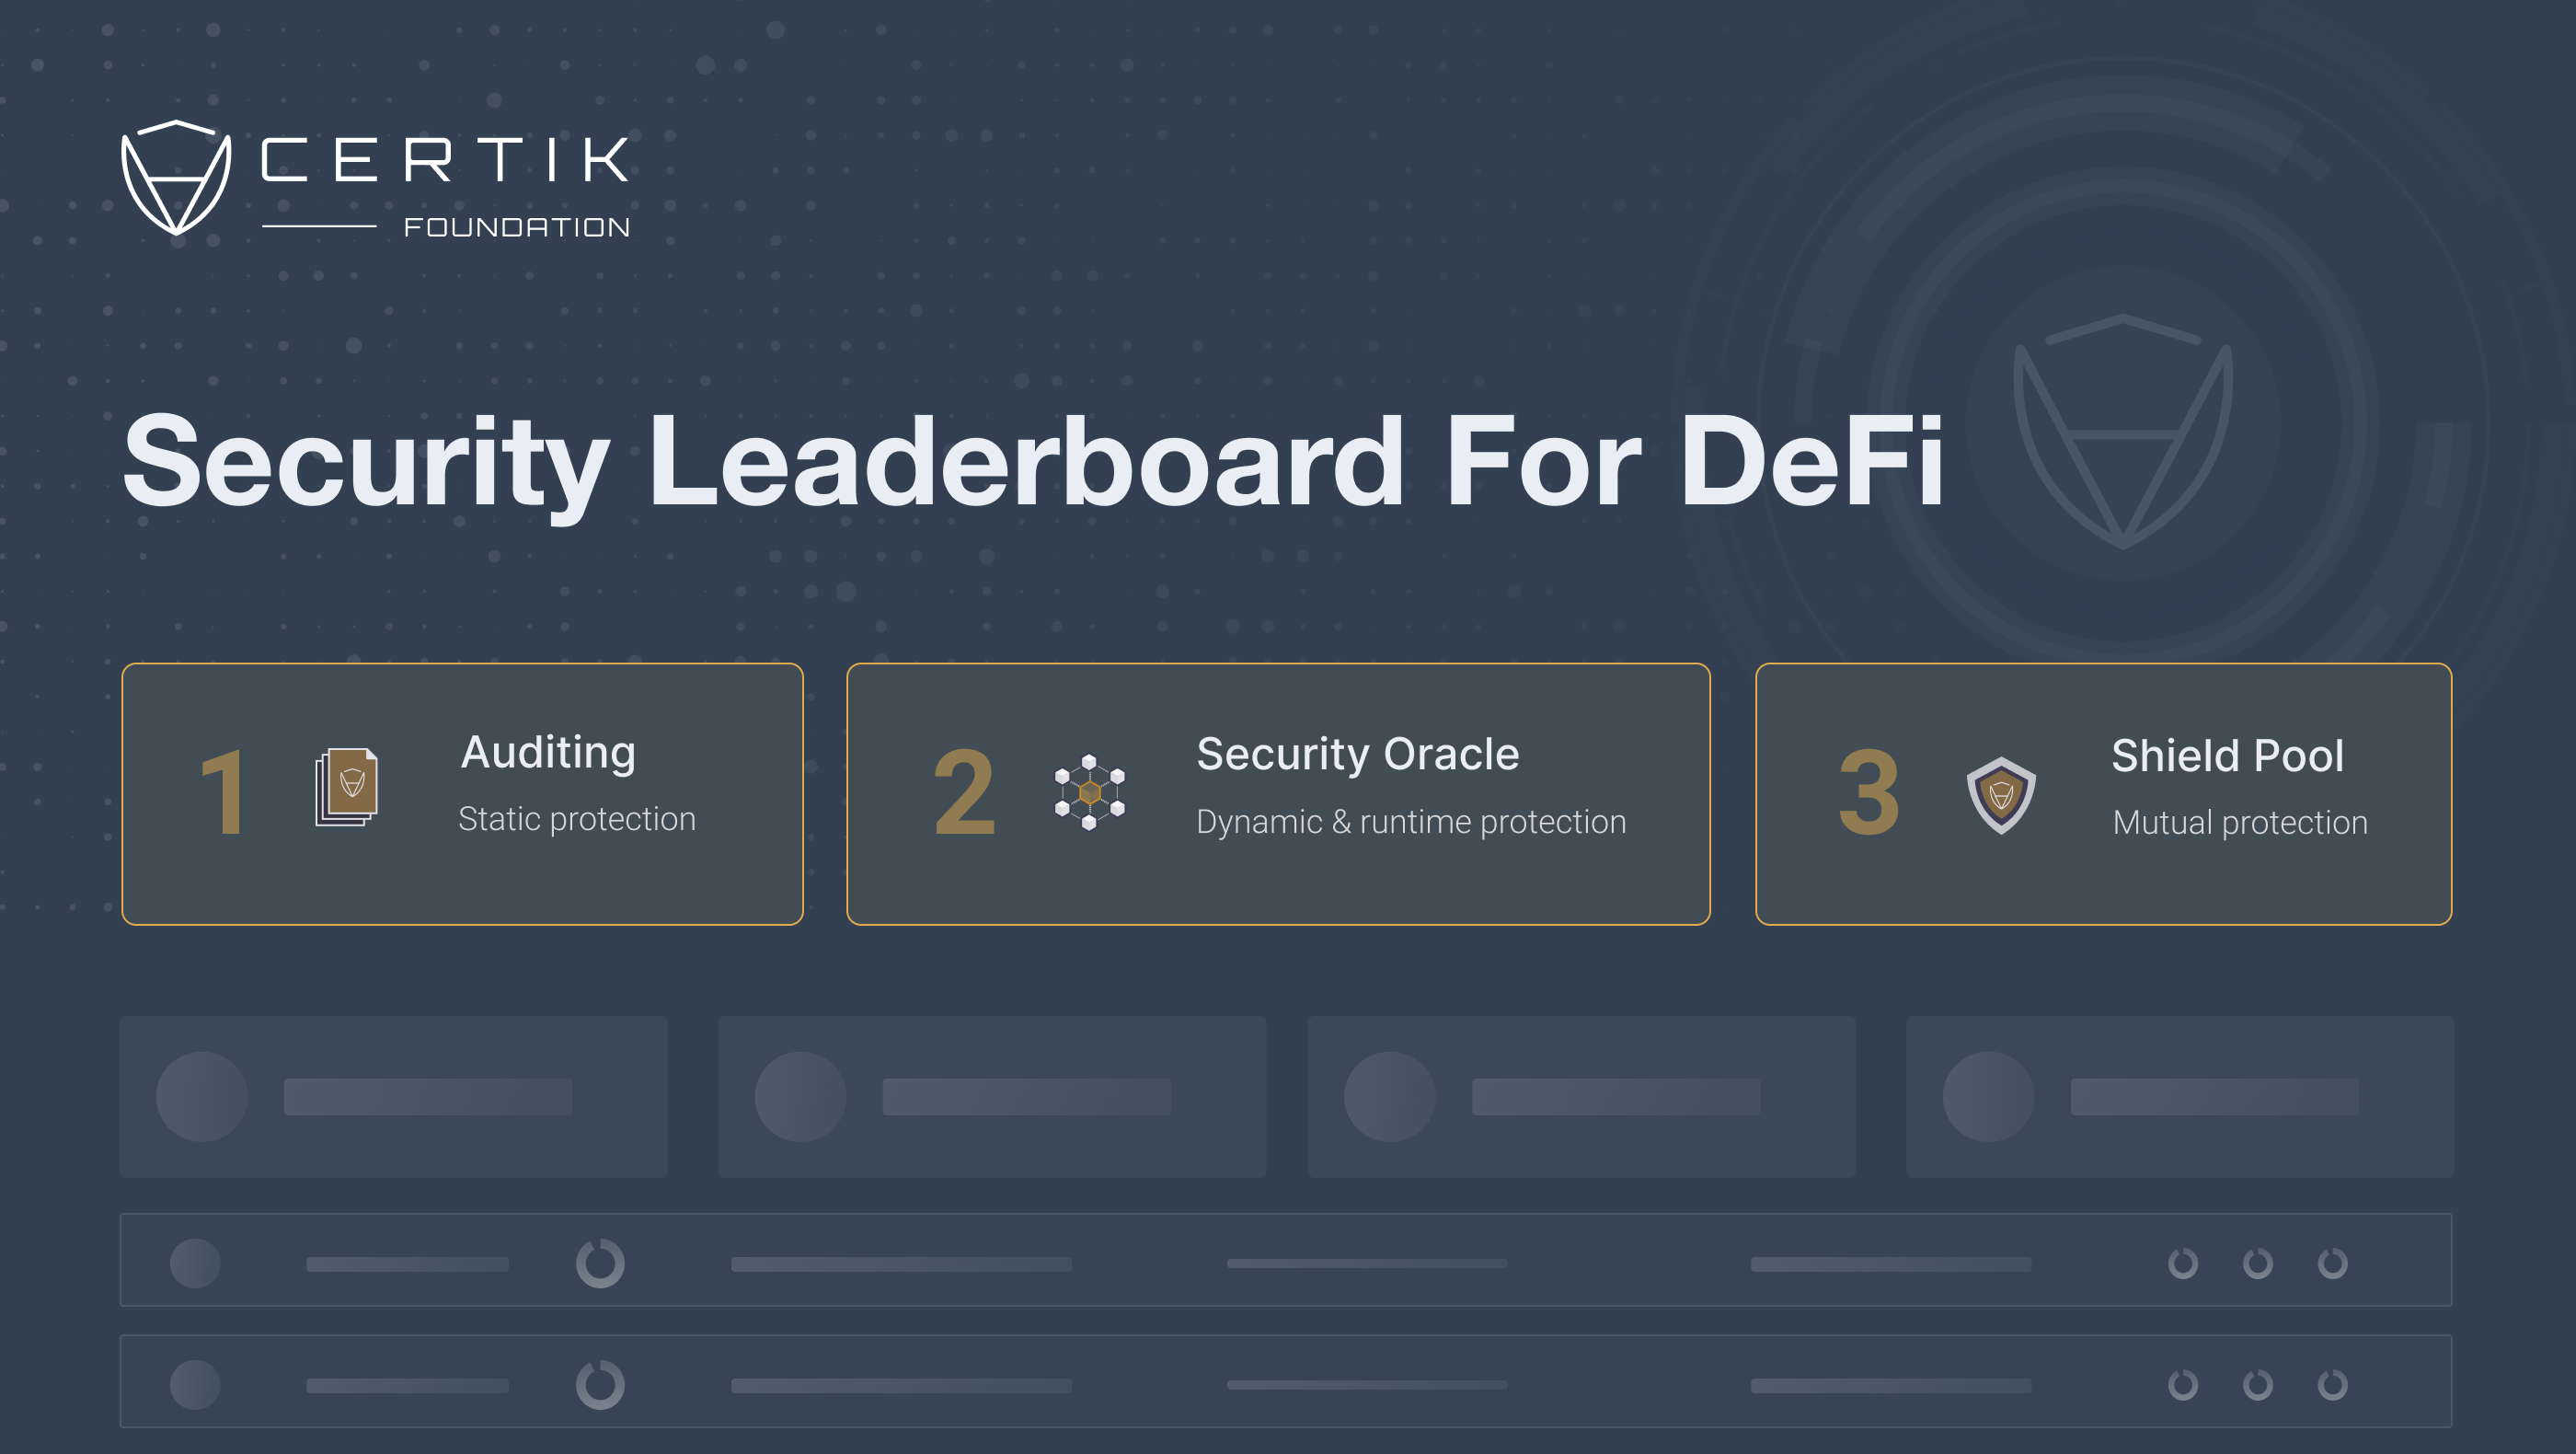 Security Leaderboard for DeFi